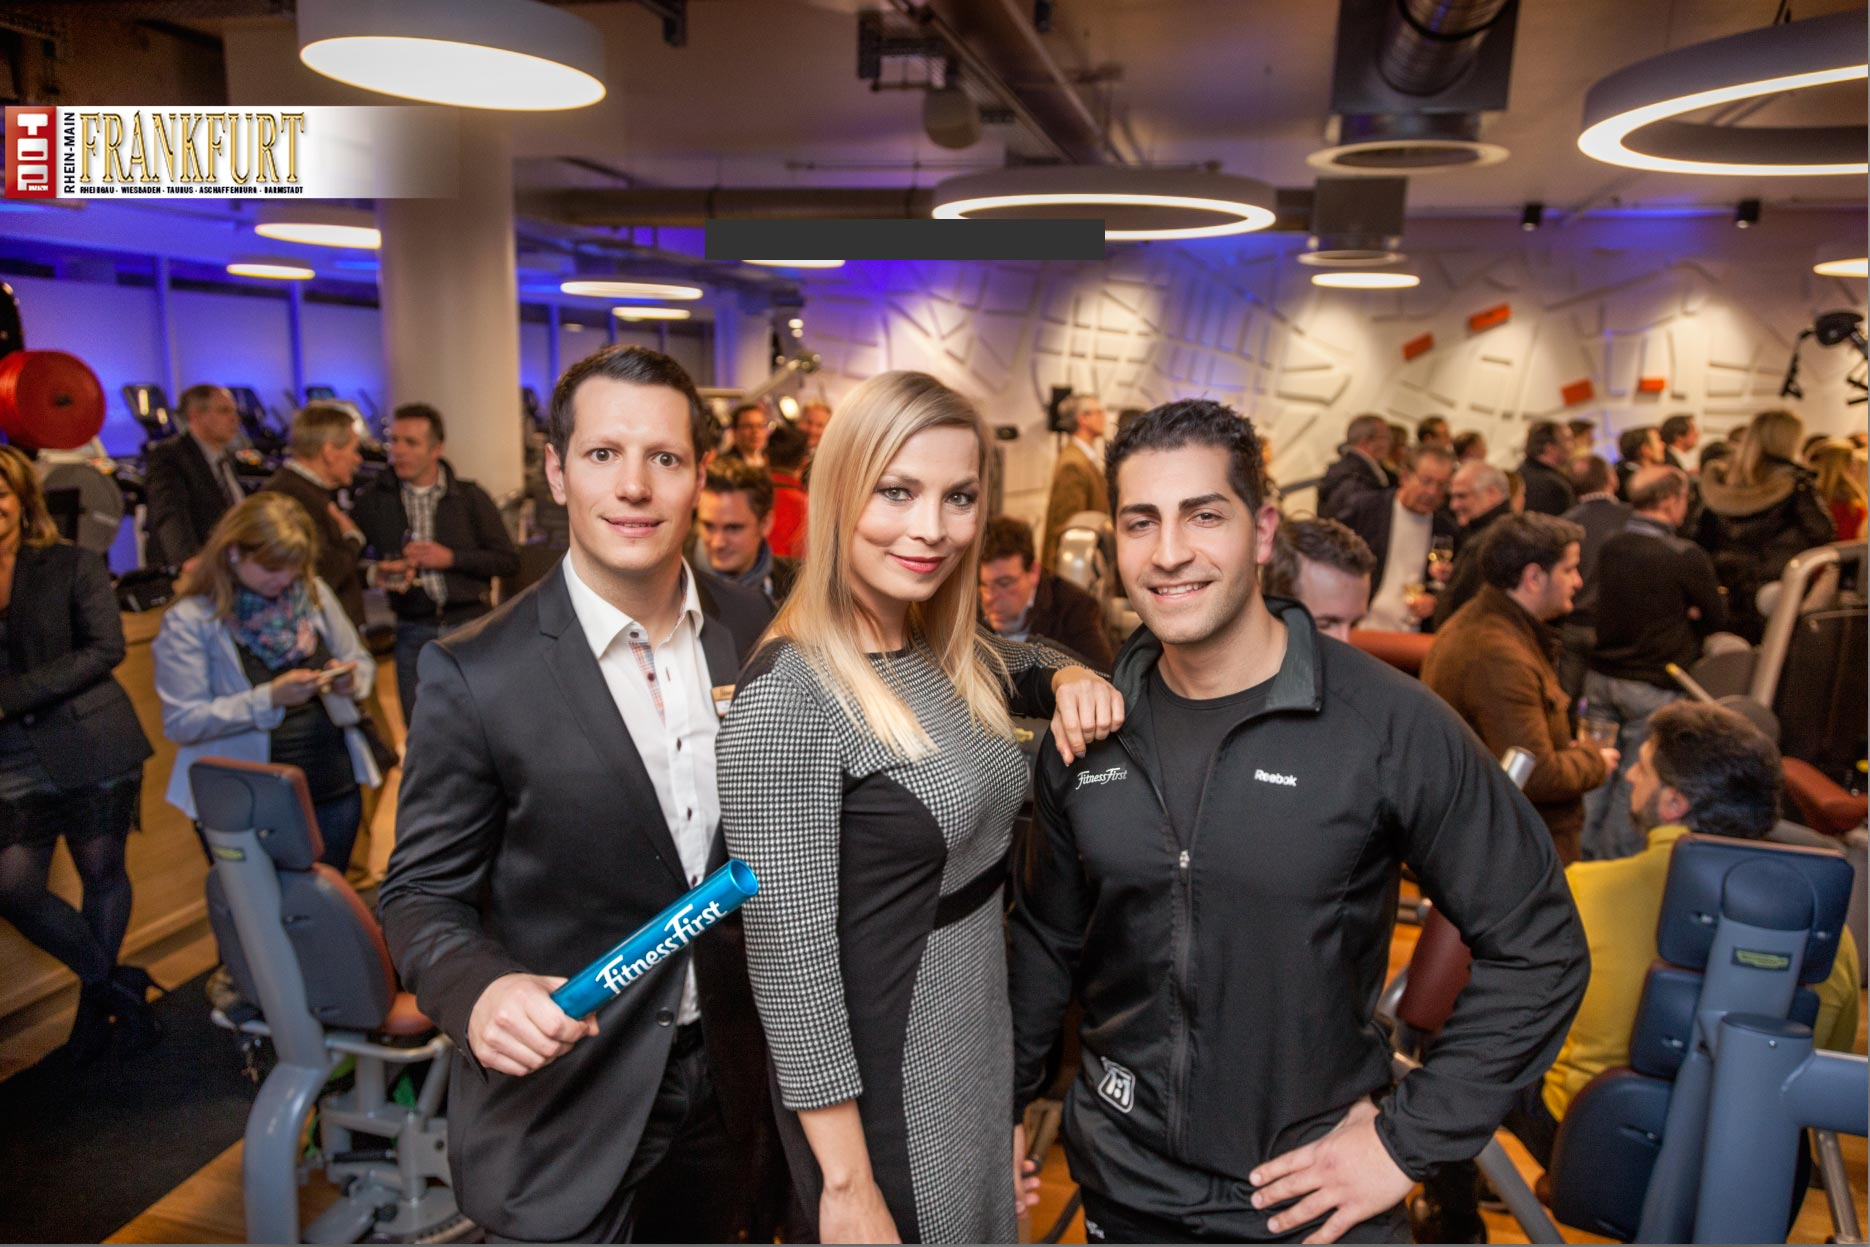 Fitness First - Black Label Club am Eschenheimer Turm wiedereröffnet